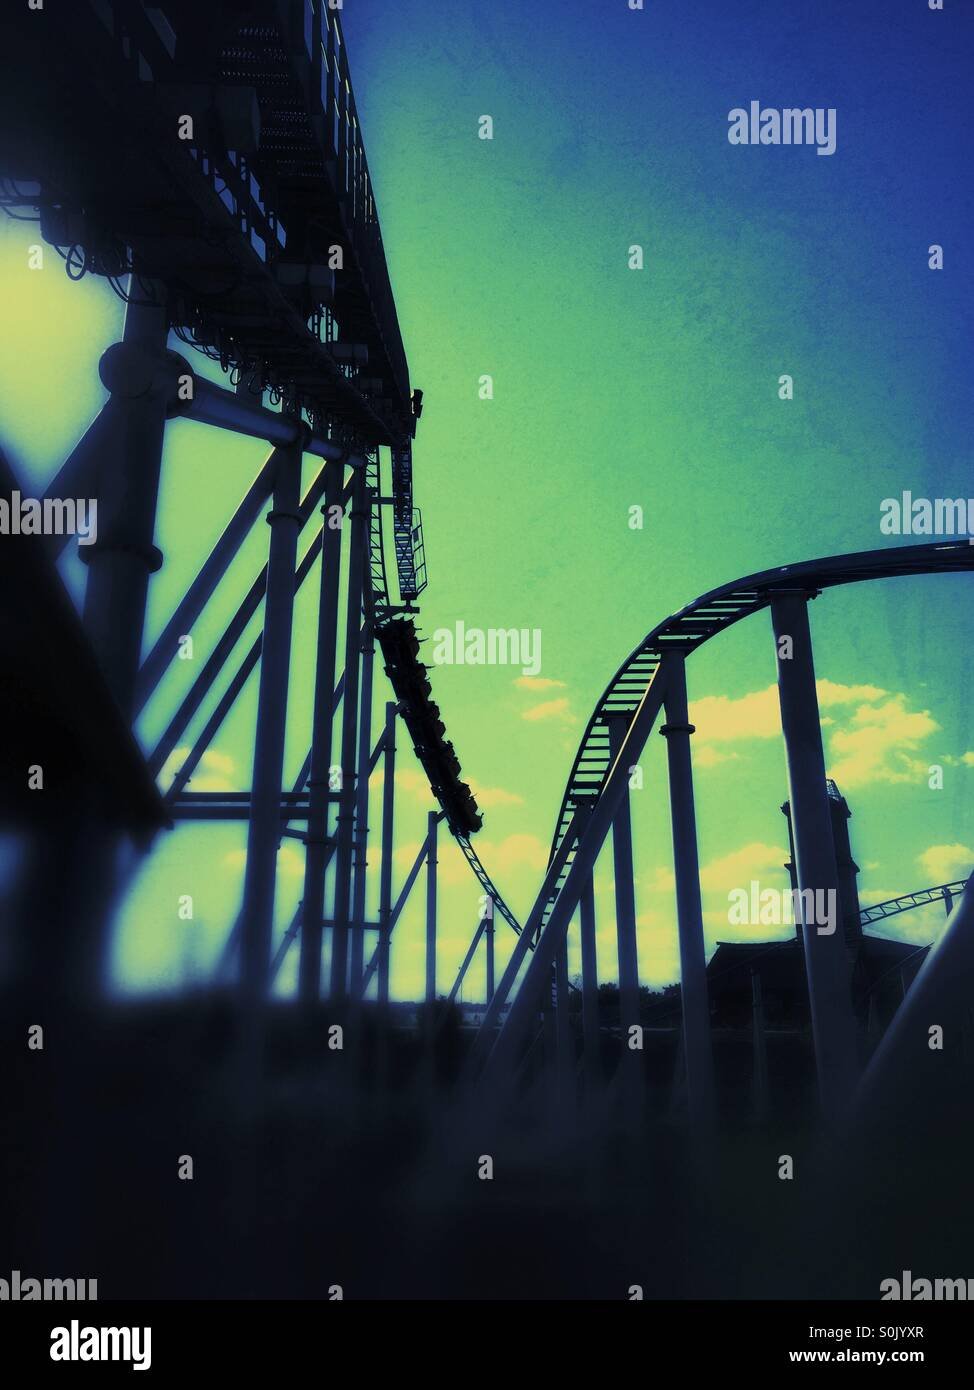 Roller coaster - Stock Image